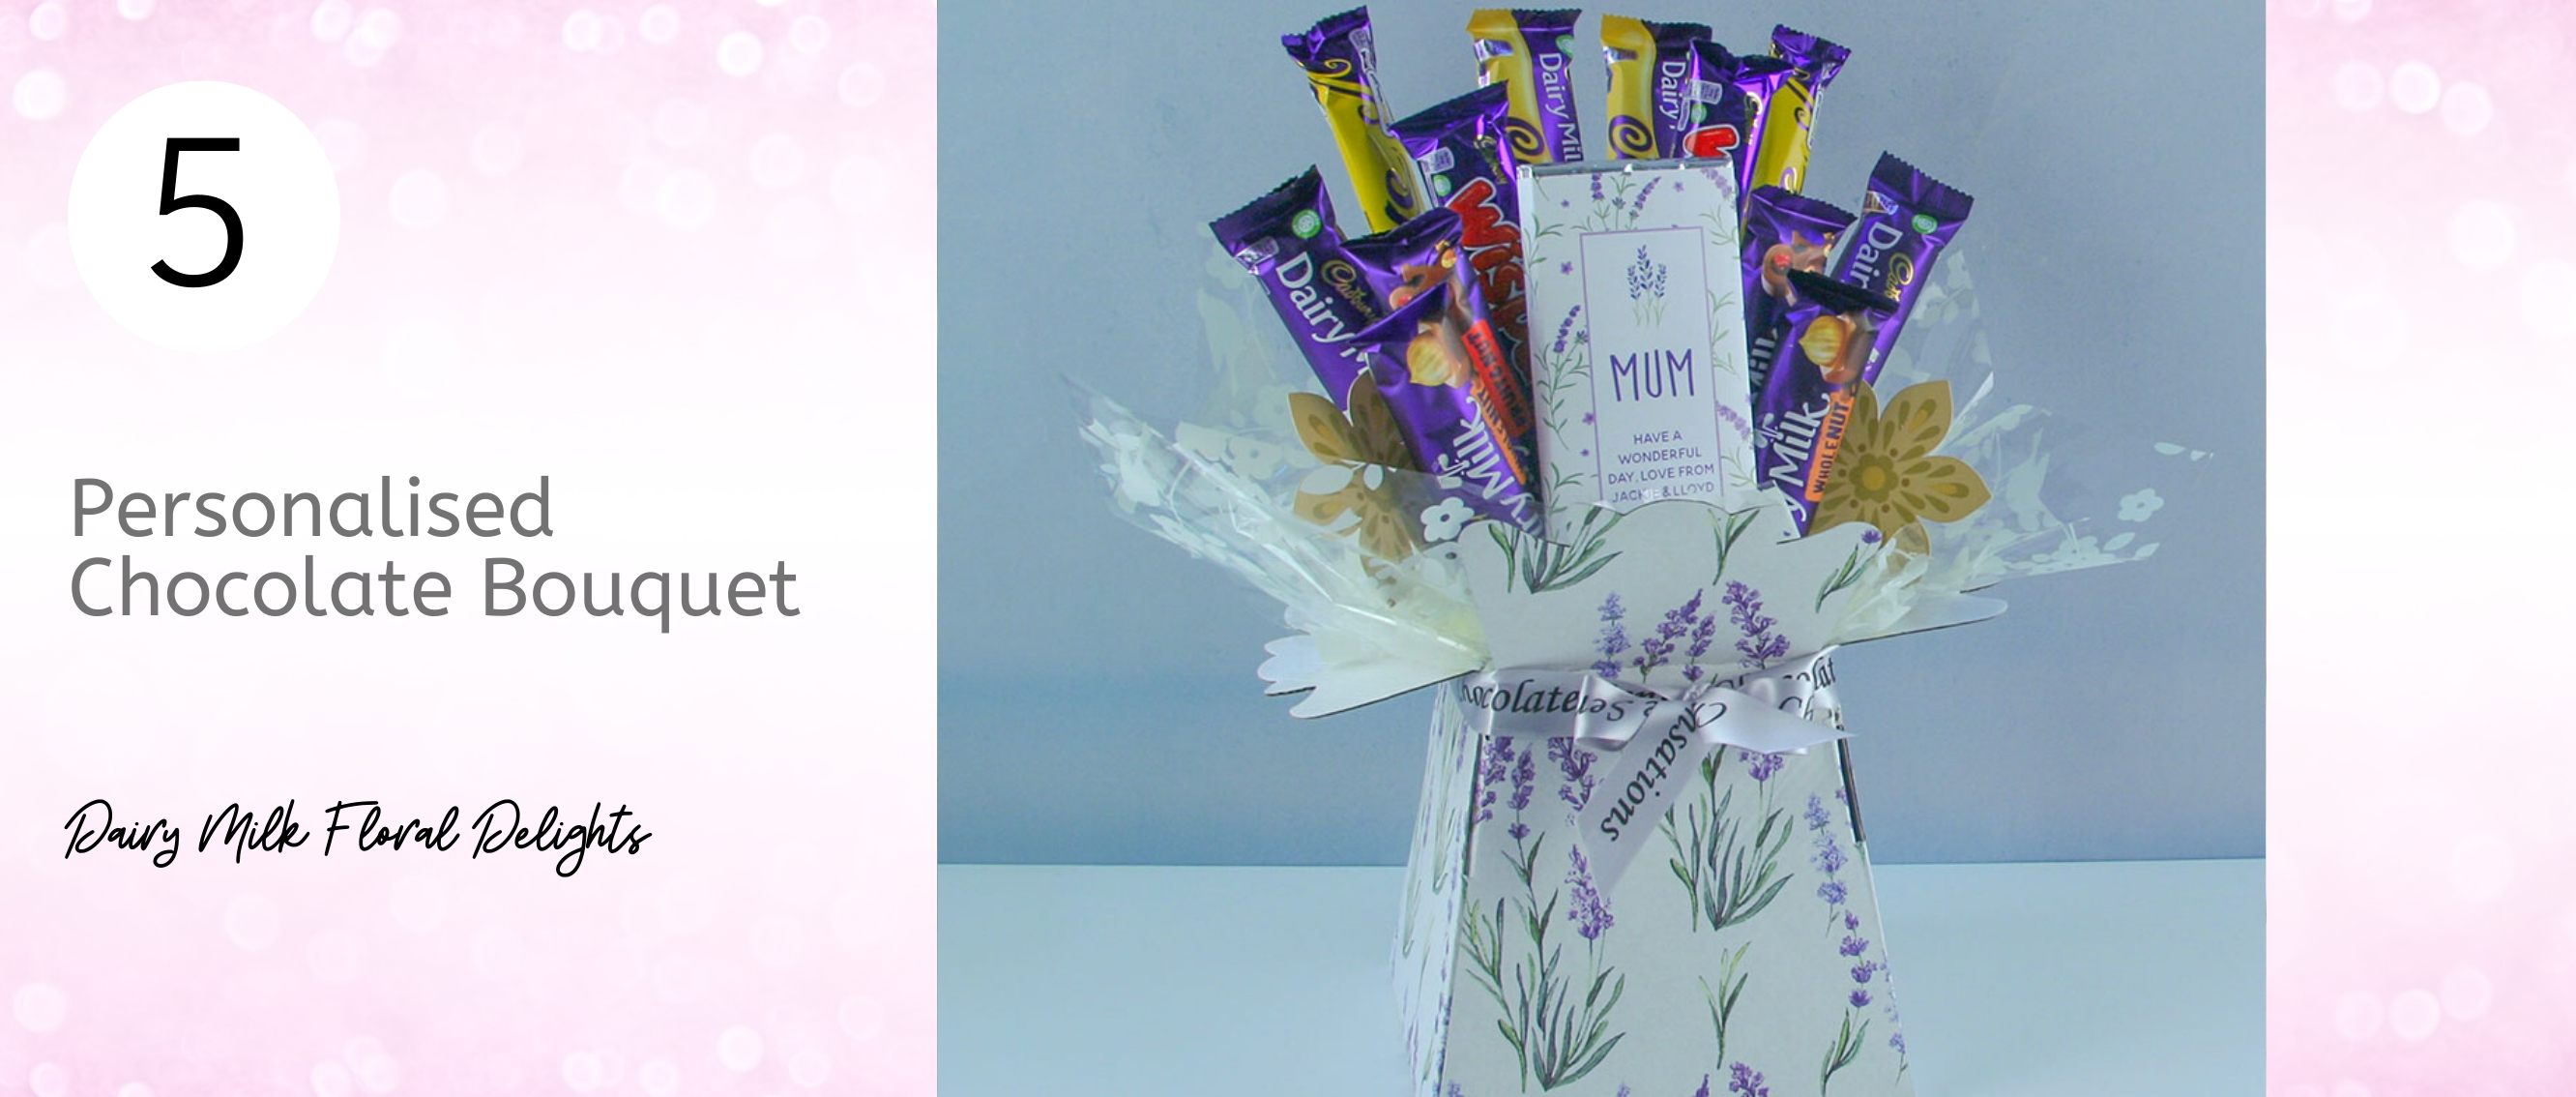 Lavender Themed Dairy Milk Chocolate Bouquet for Mum...